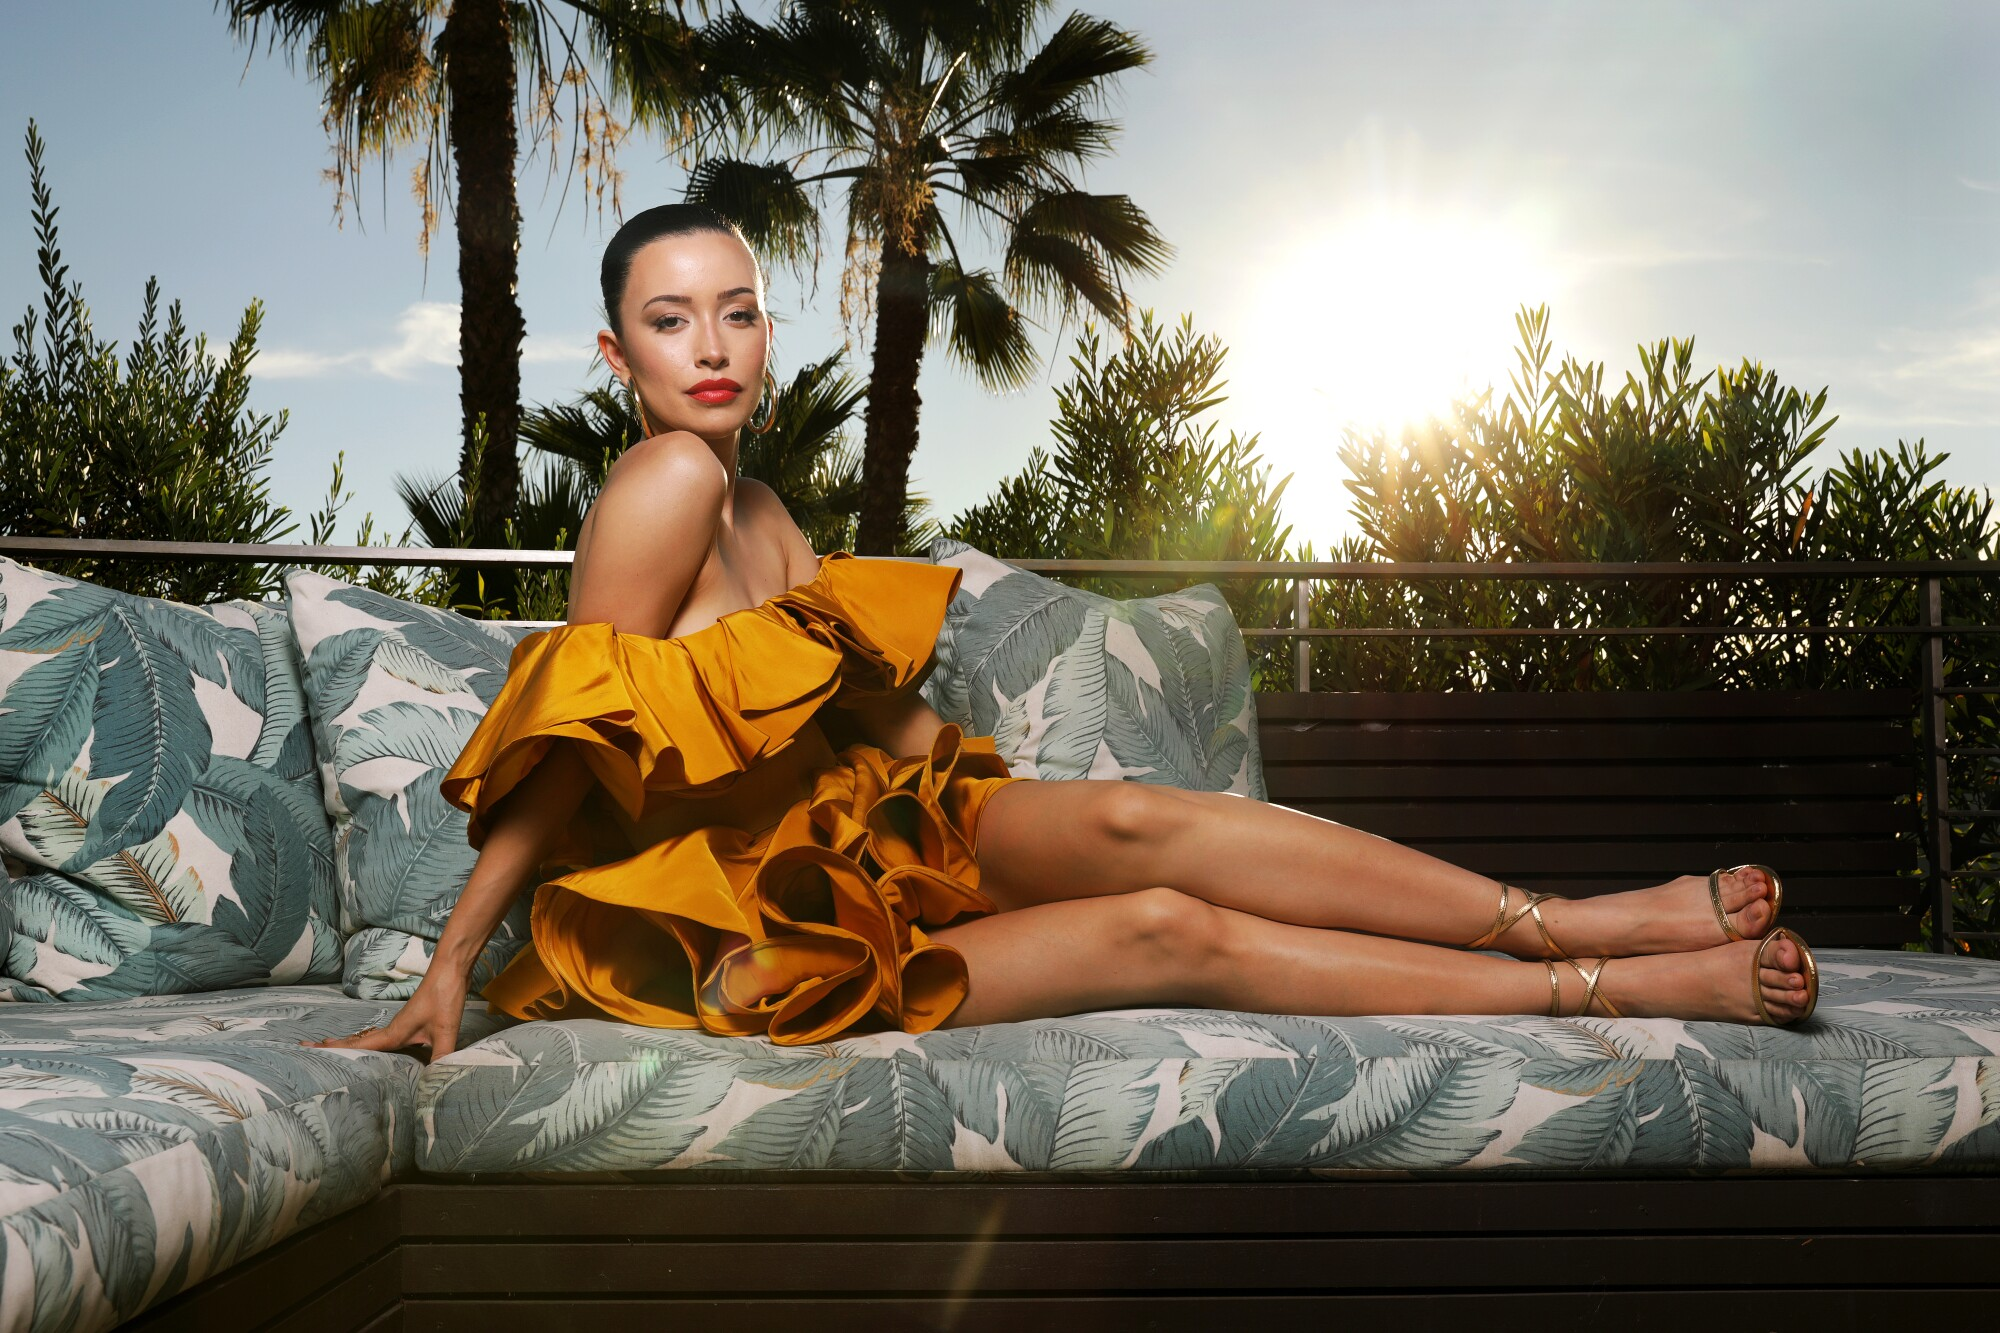 Actress Christian Serratos, in short ruffled dress and strappy shoes, strikes a pose on an outdoor deck.